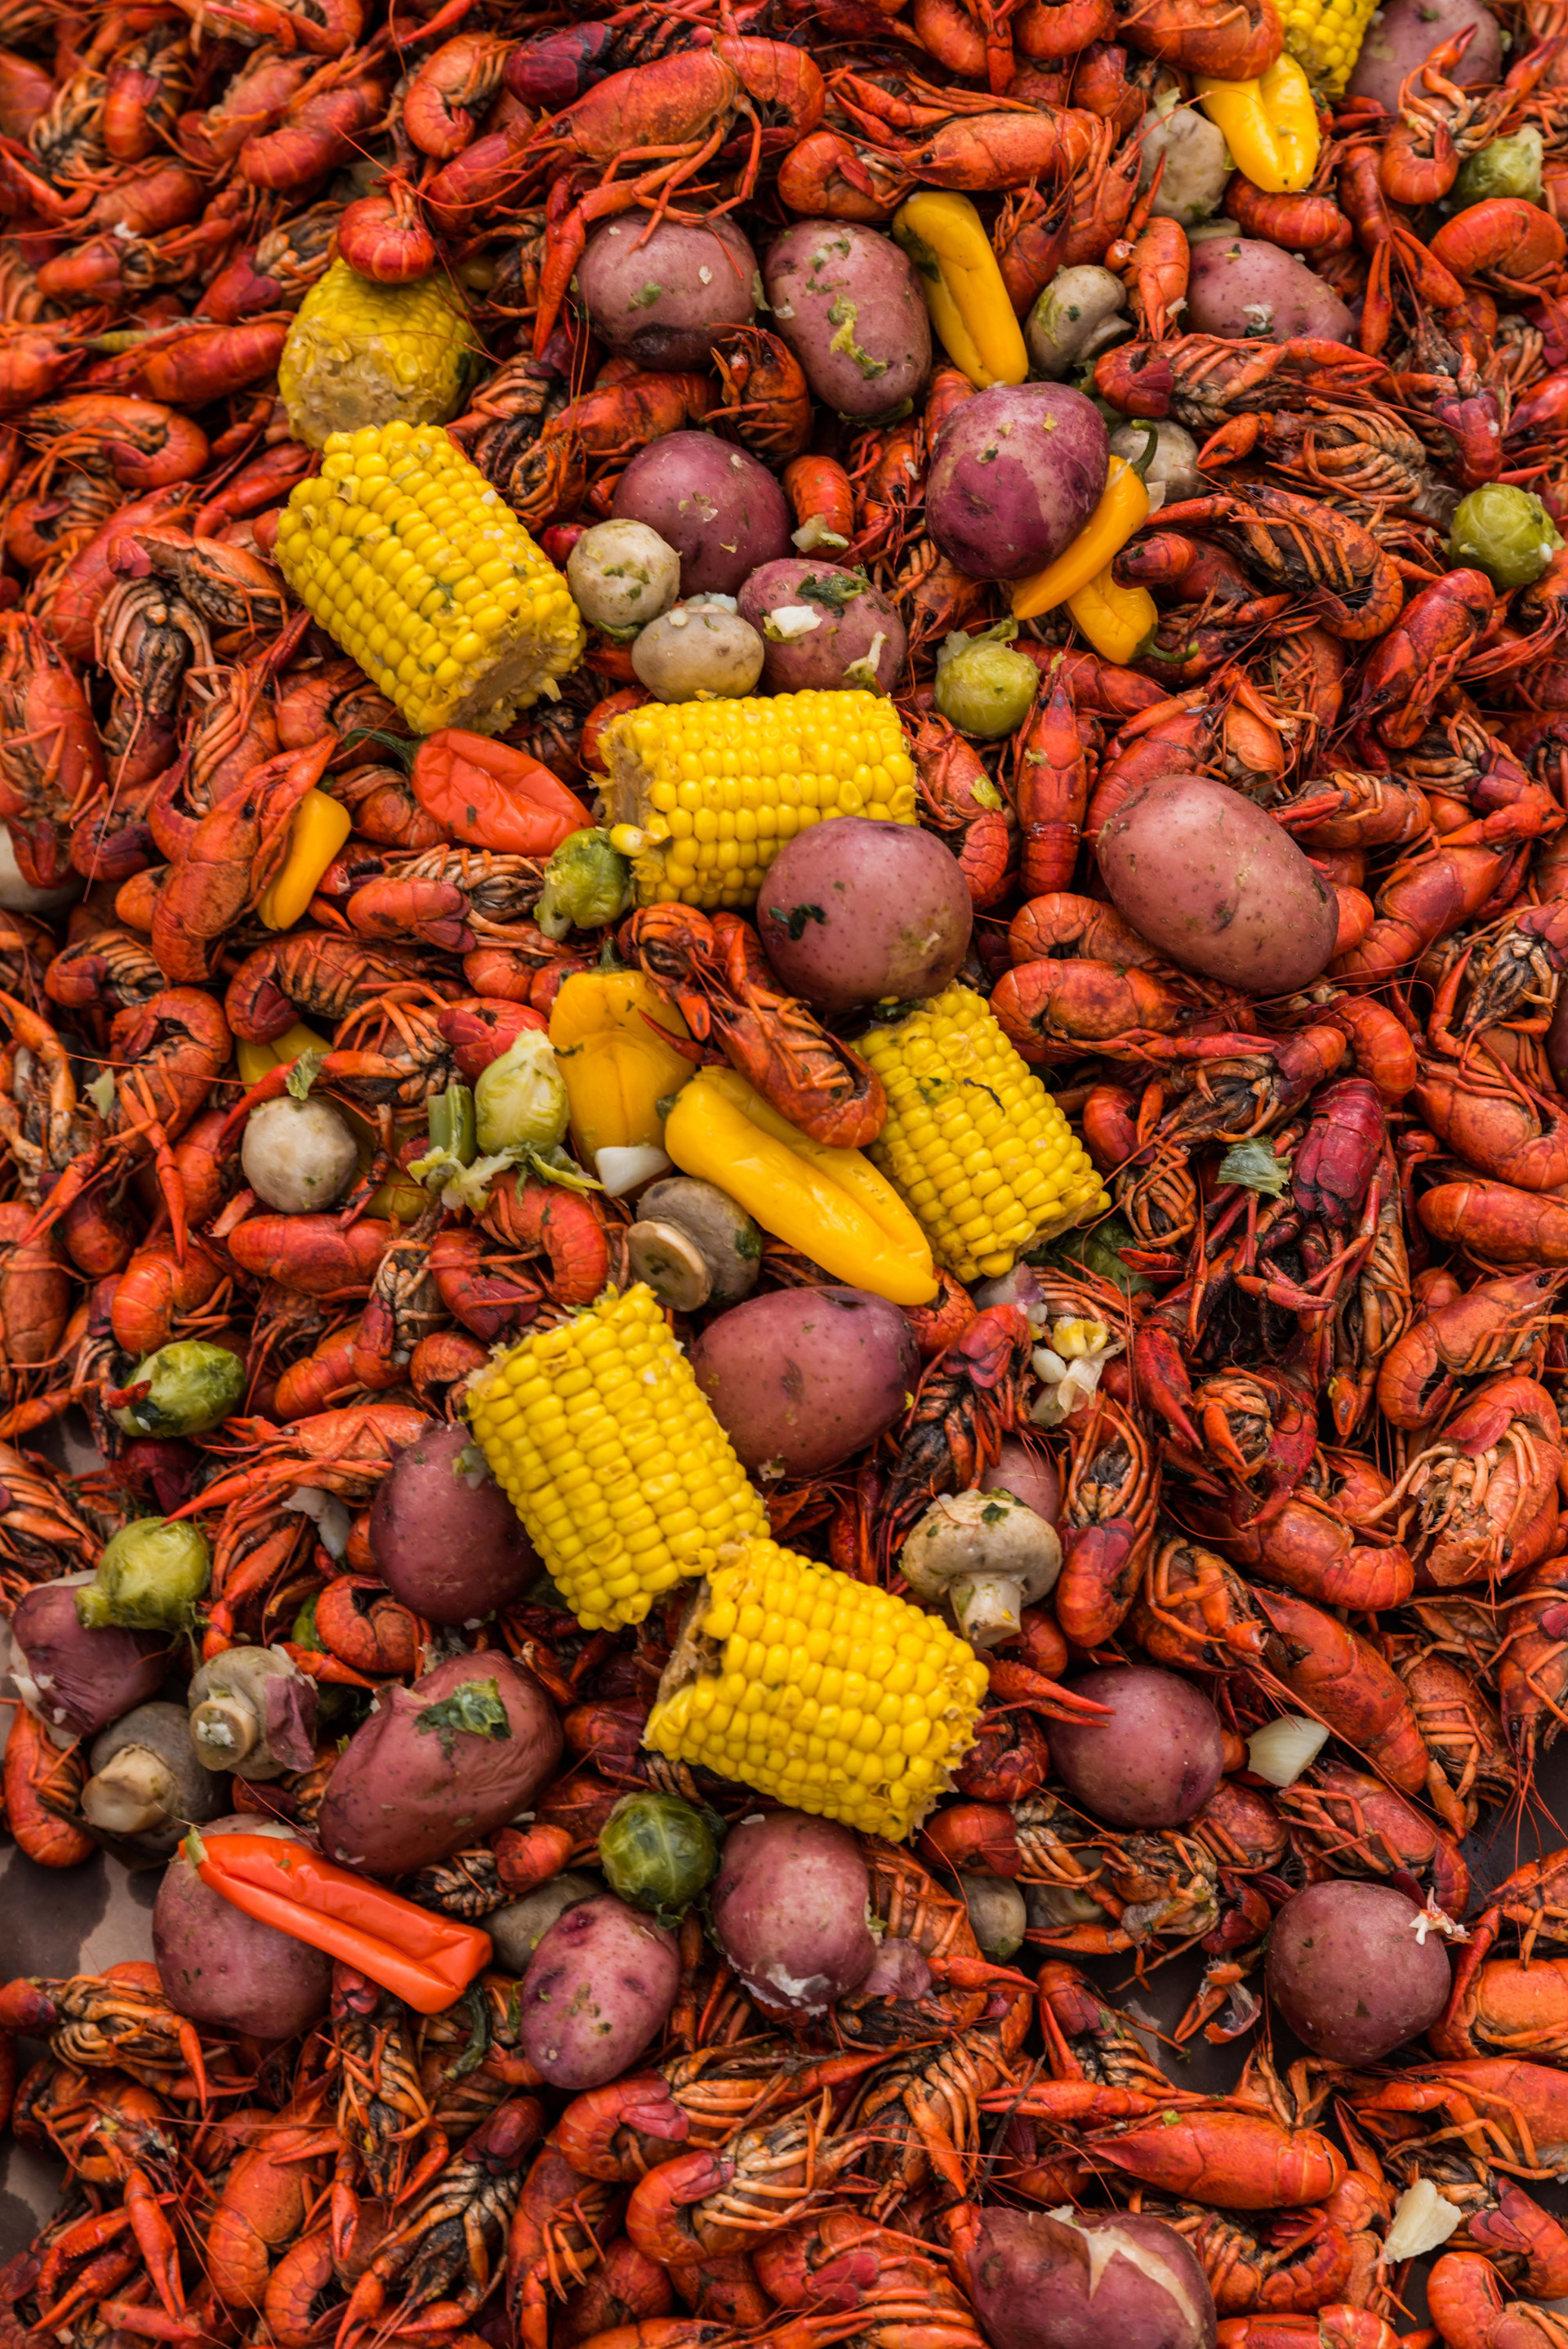 150 lb pile of Crawfish at The Shed BBQ & Blues Joint. The Shed is one of the only restaurants on the coast that serves premium select crawfish, aka they are baby lobsters.